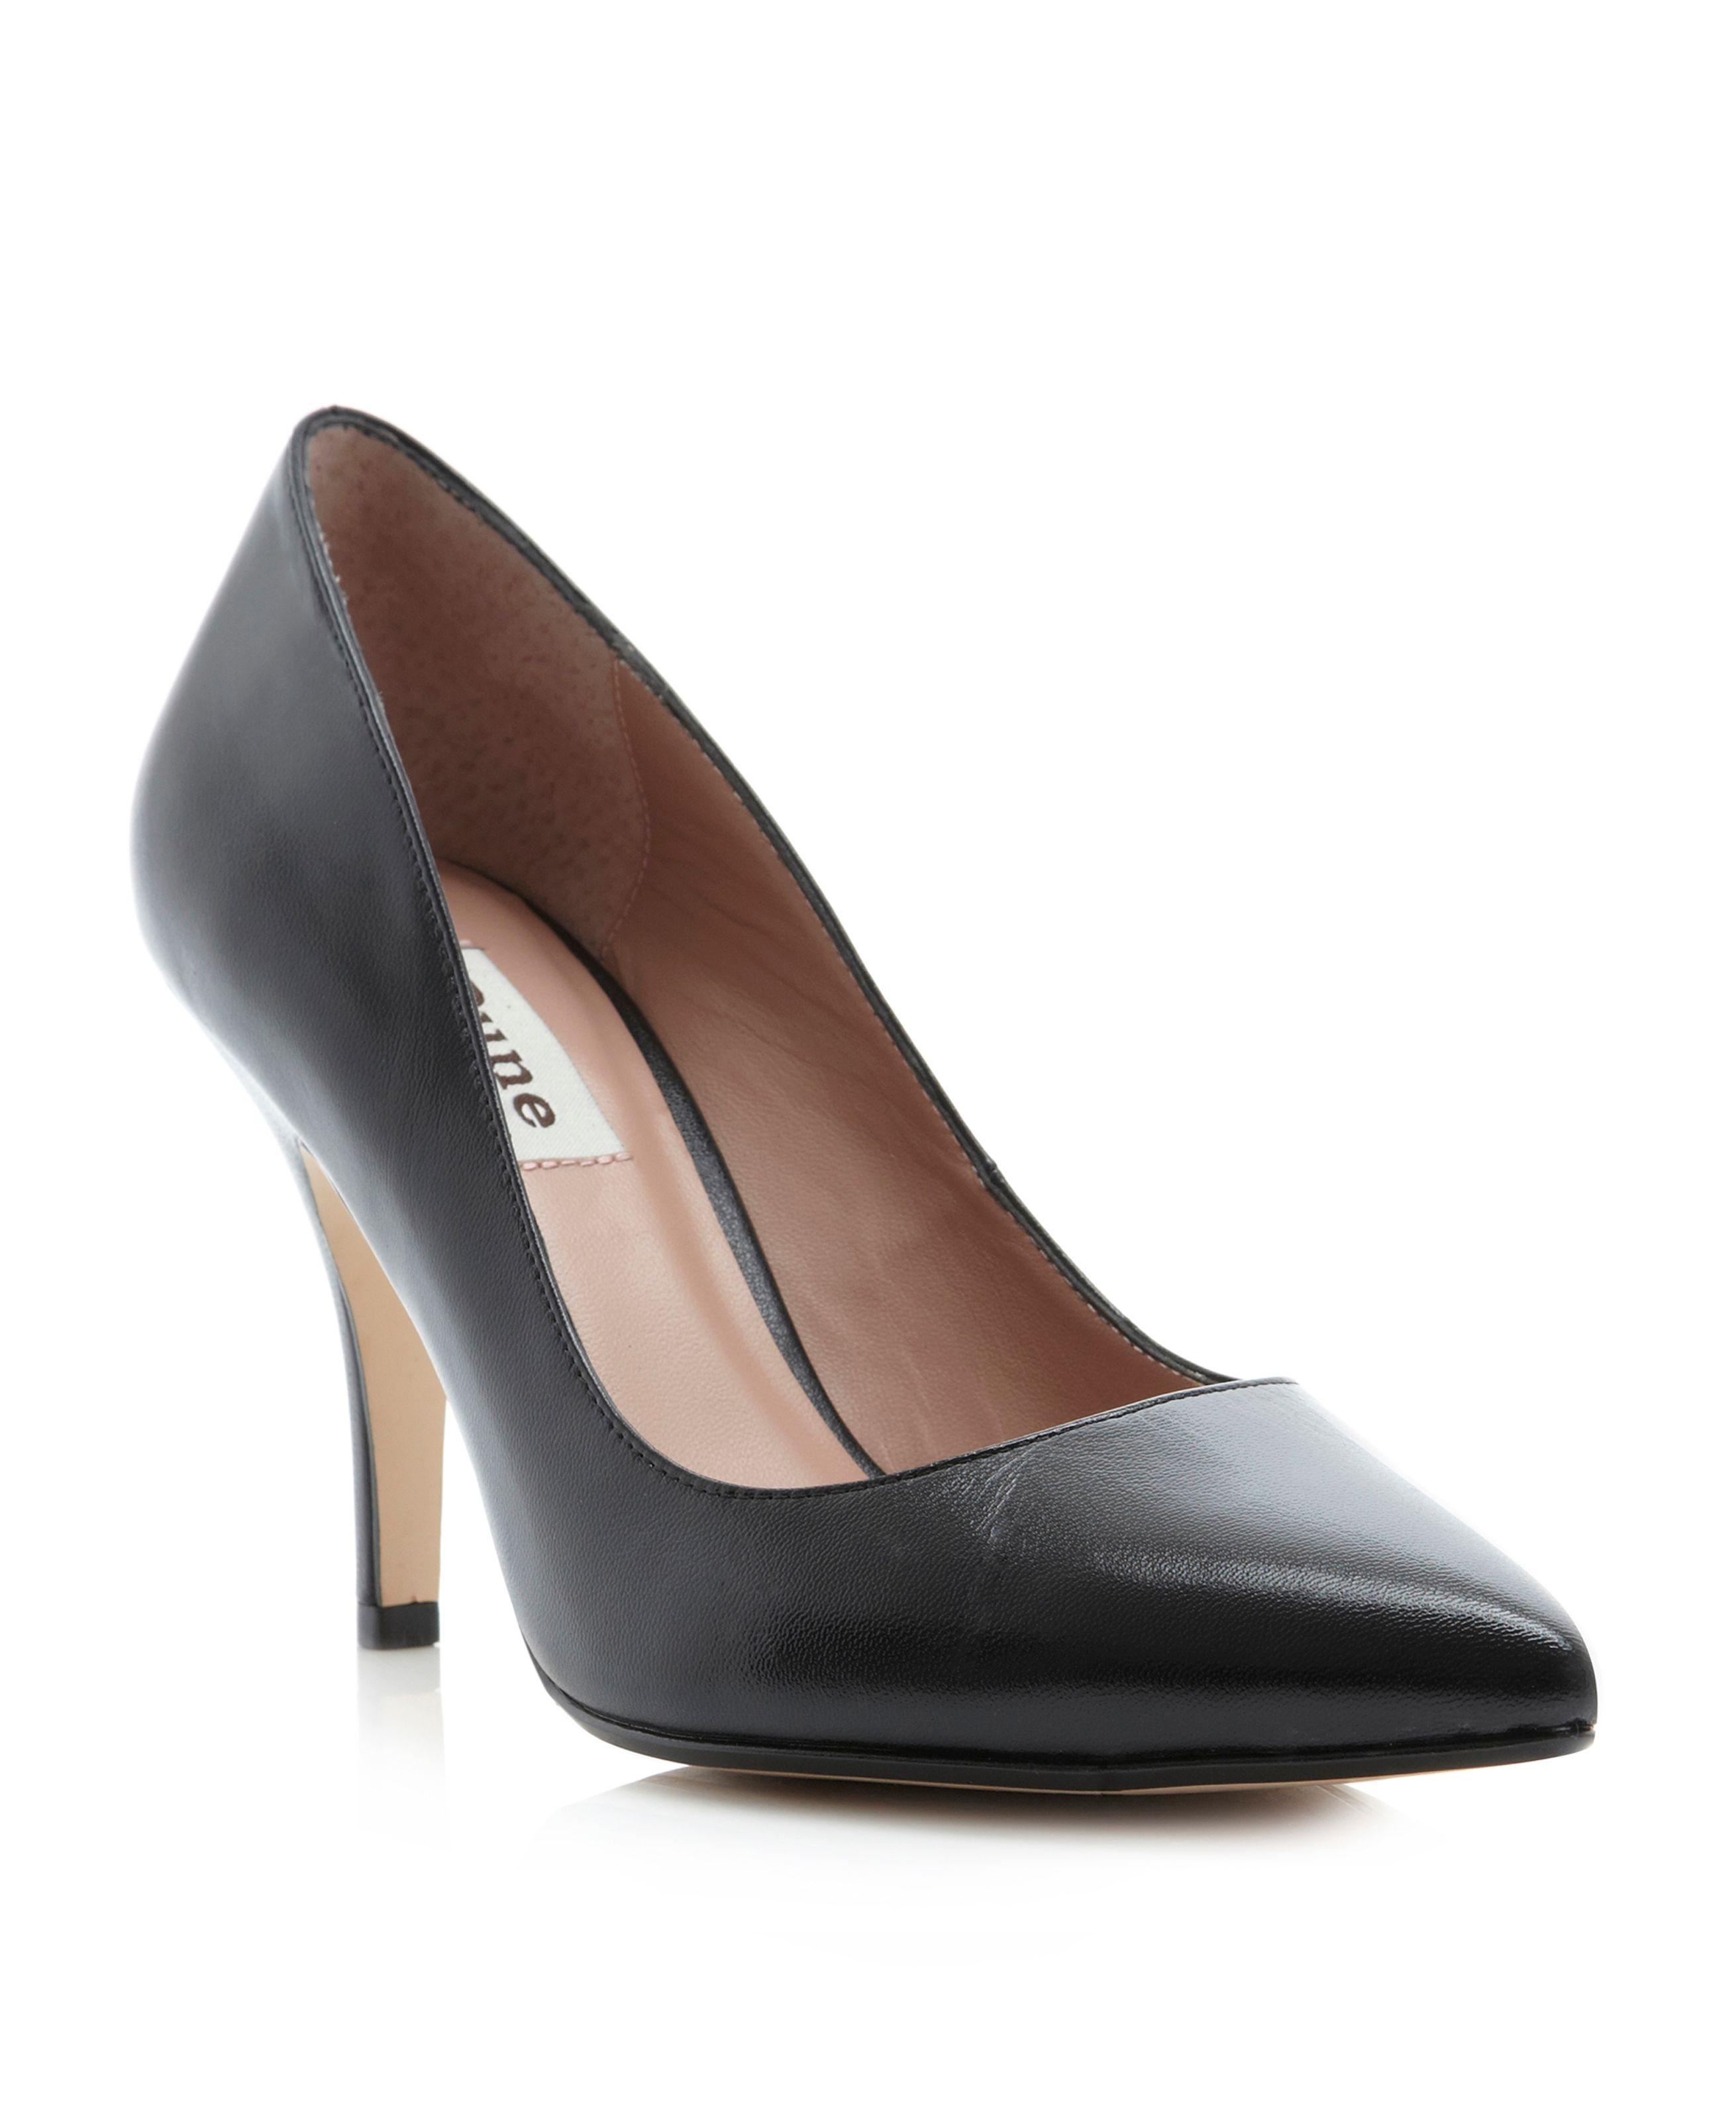 Appoint pointed work court shoes